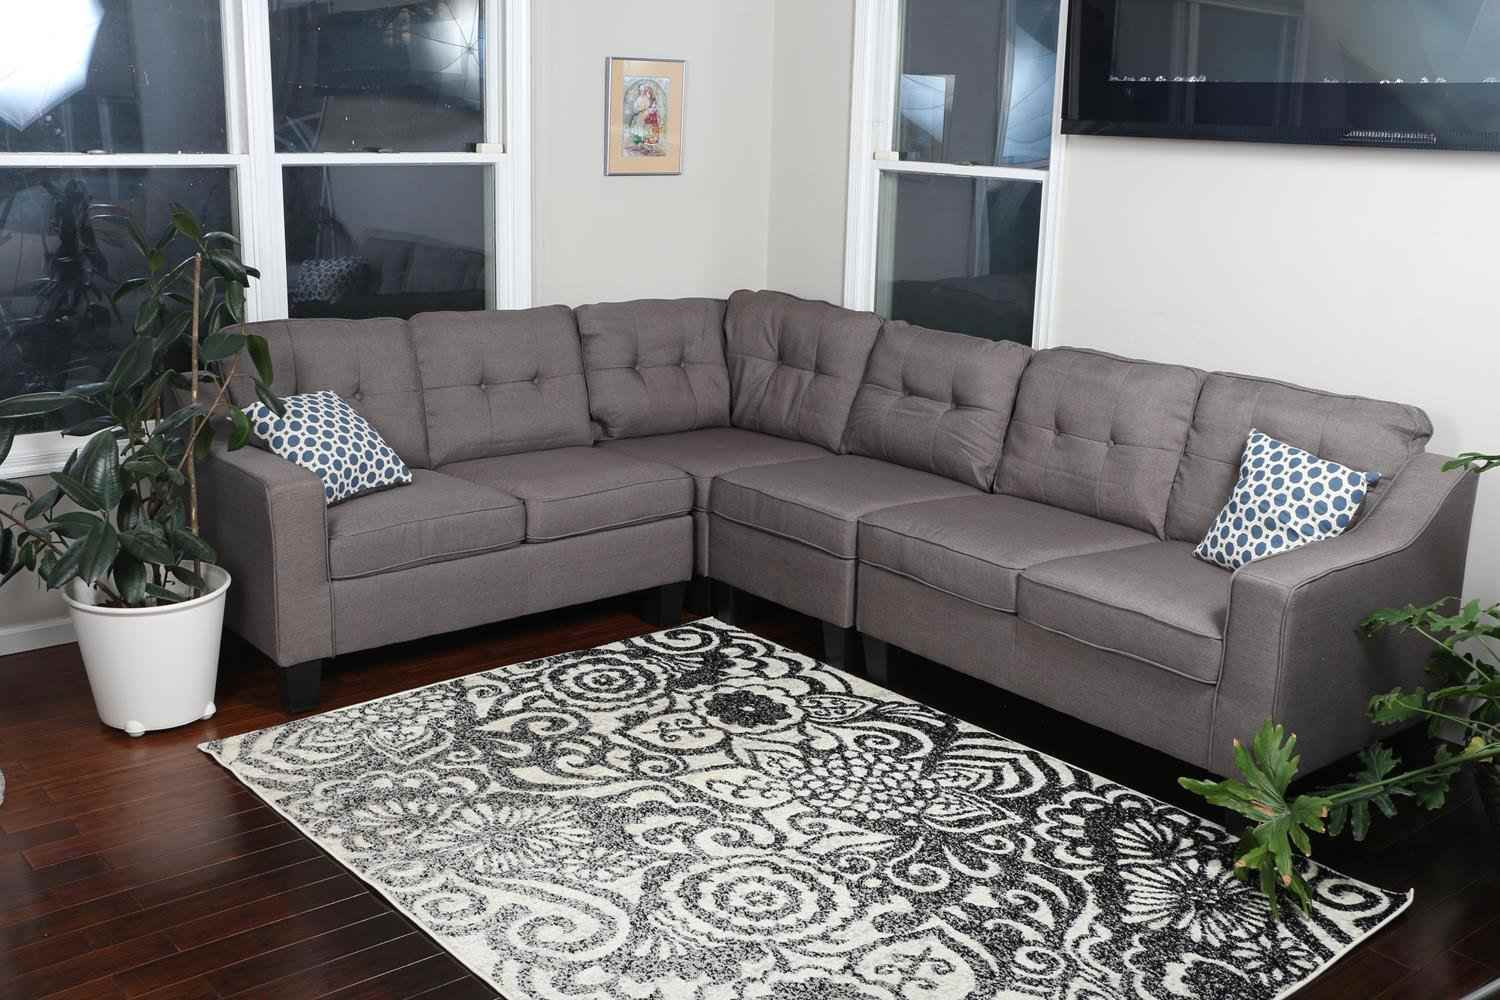 amazon com living room furniture small open plan kitchen ideas 9 best places to buy of 2019 for quick delivery